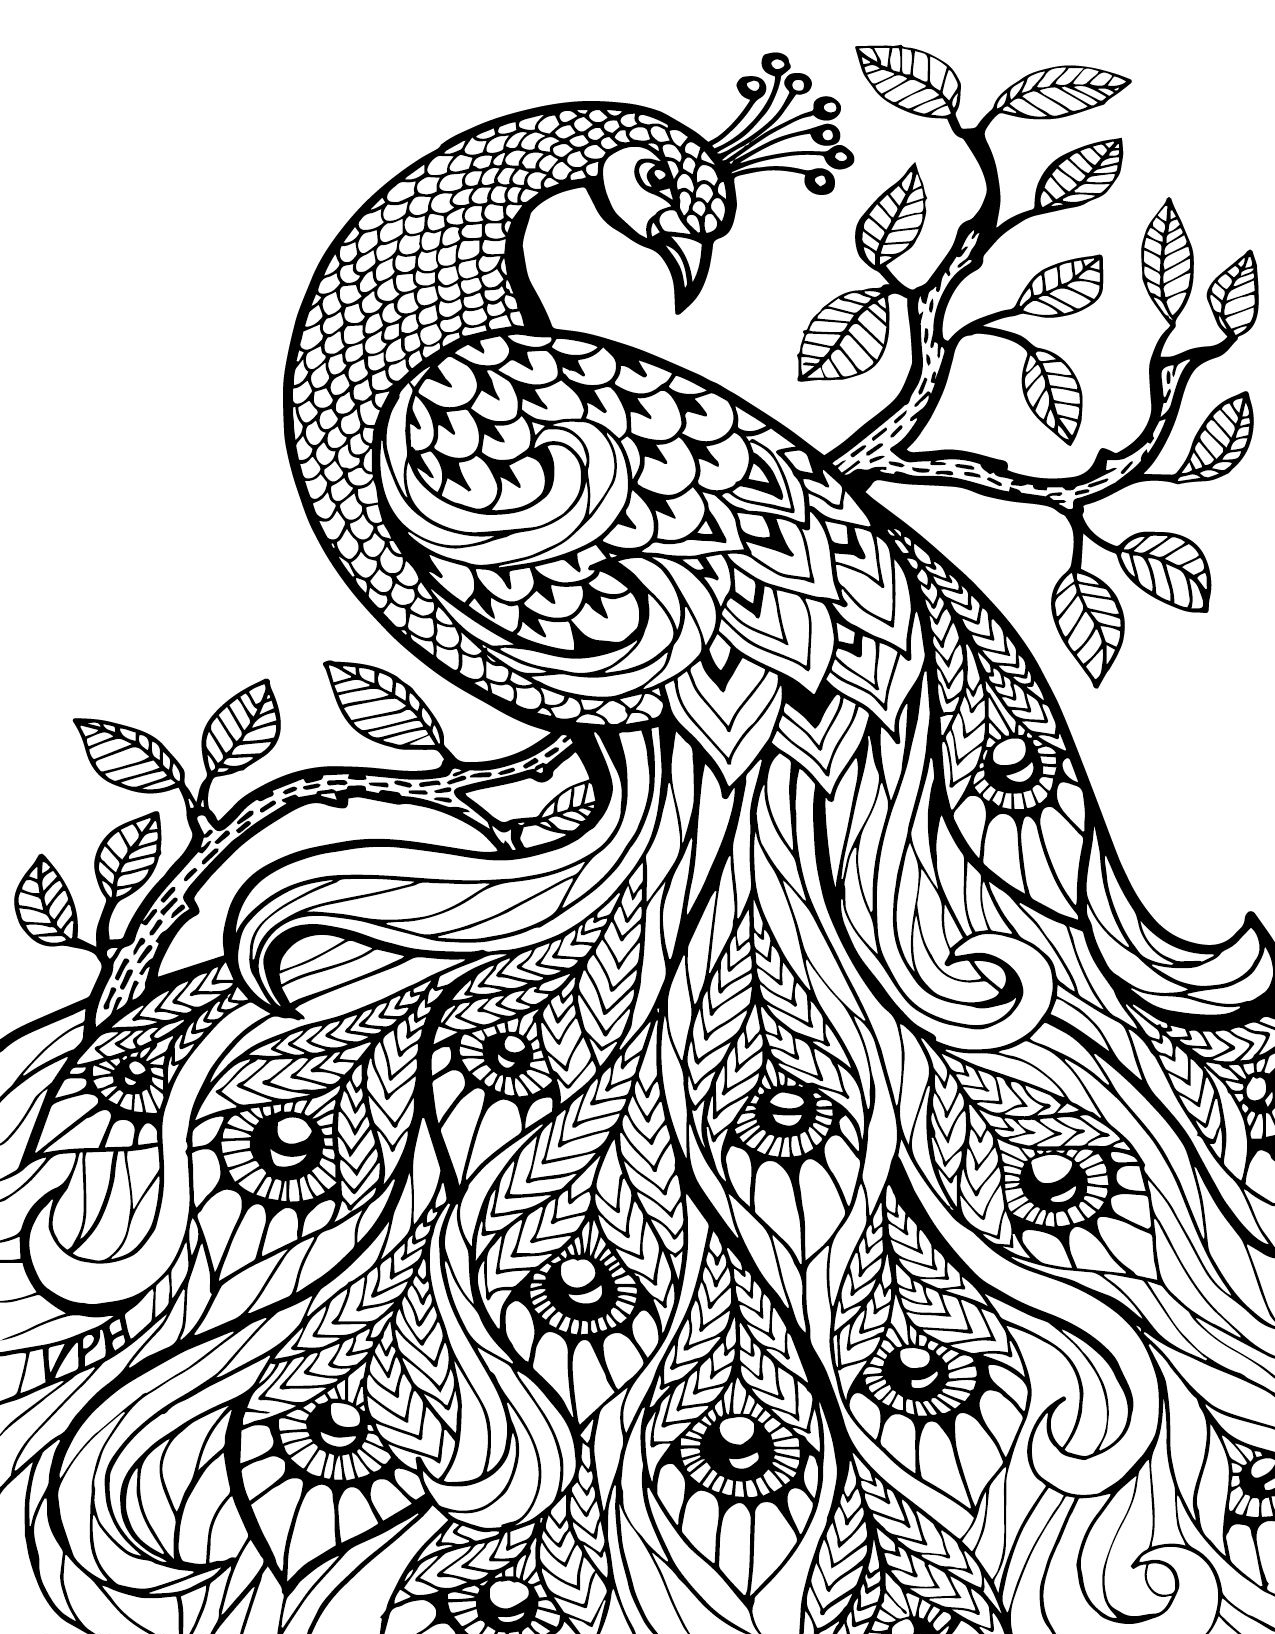 peacock coloring images peacock coloring pages for kids peacock images coloring